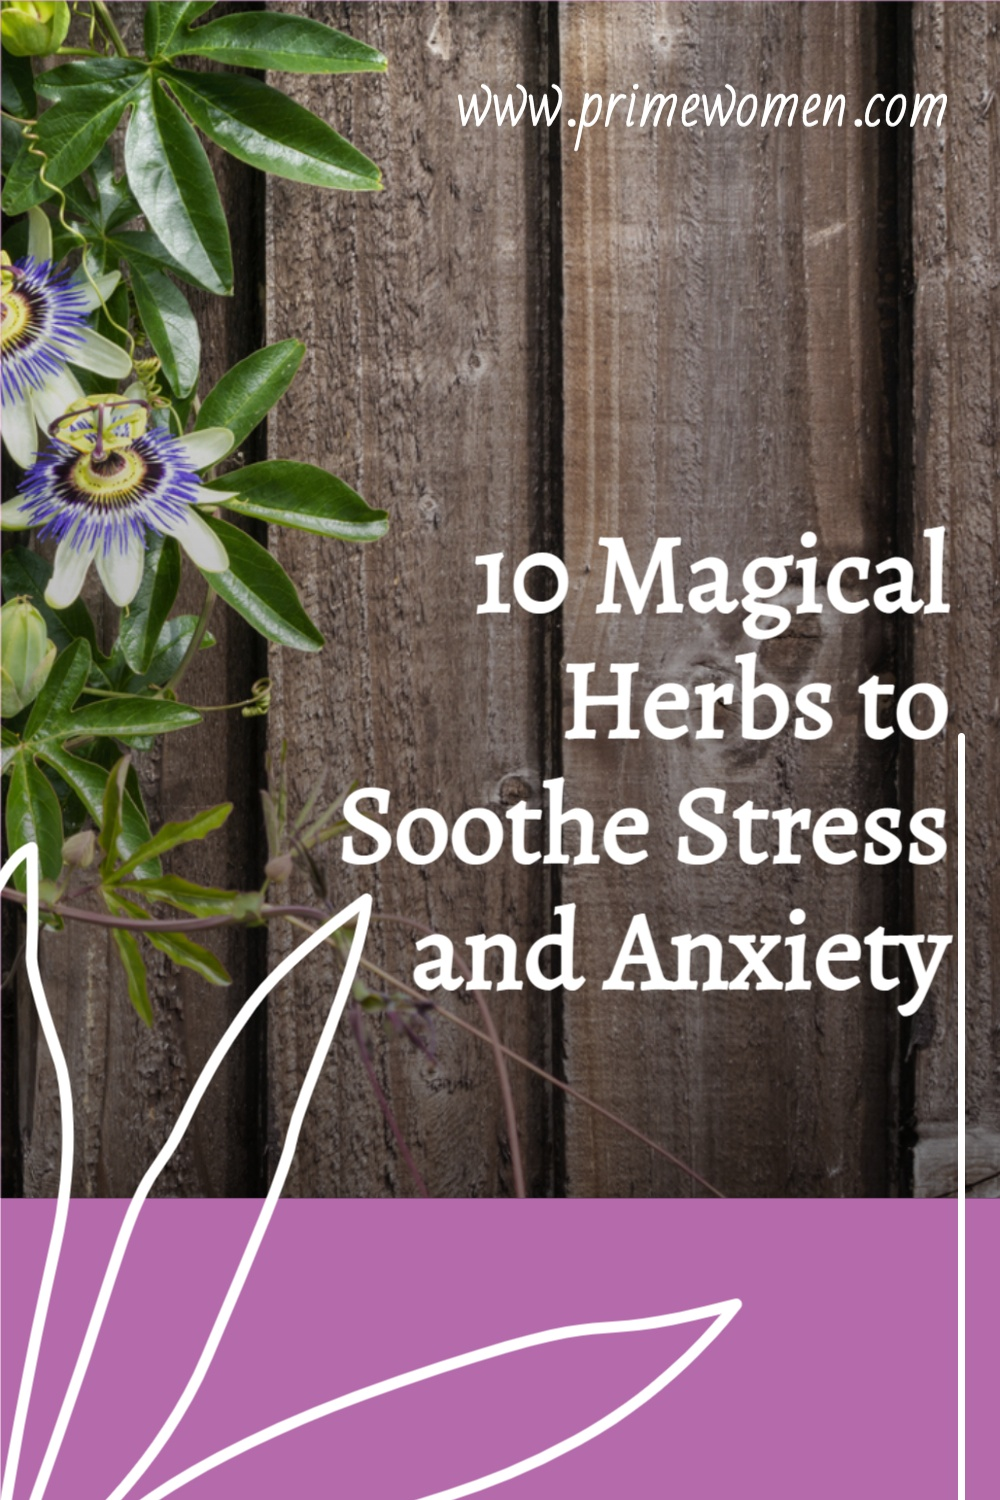 10 Magical Herbs to Soothe Stress and Anxiety